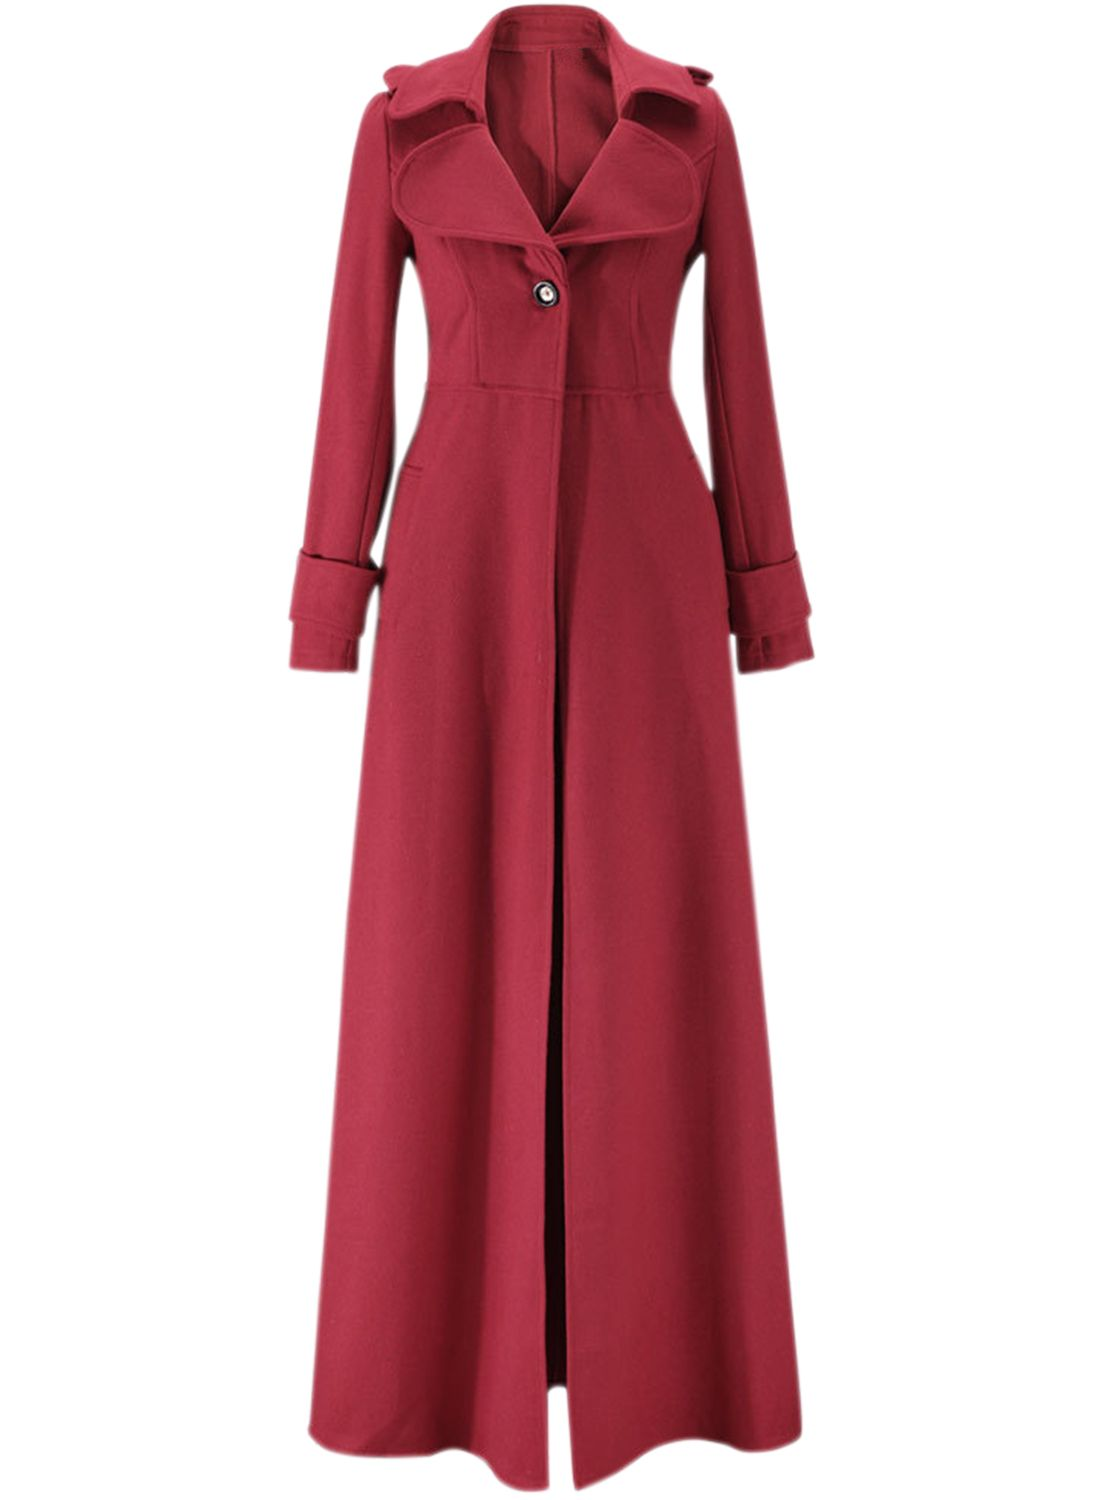 769a8222d3dd Fashion Long Sleeve Floor Length Long Trench Coat - OASAP.com in ...